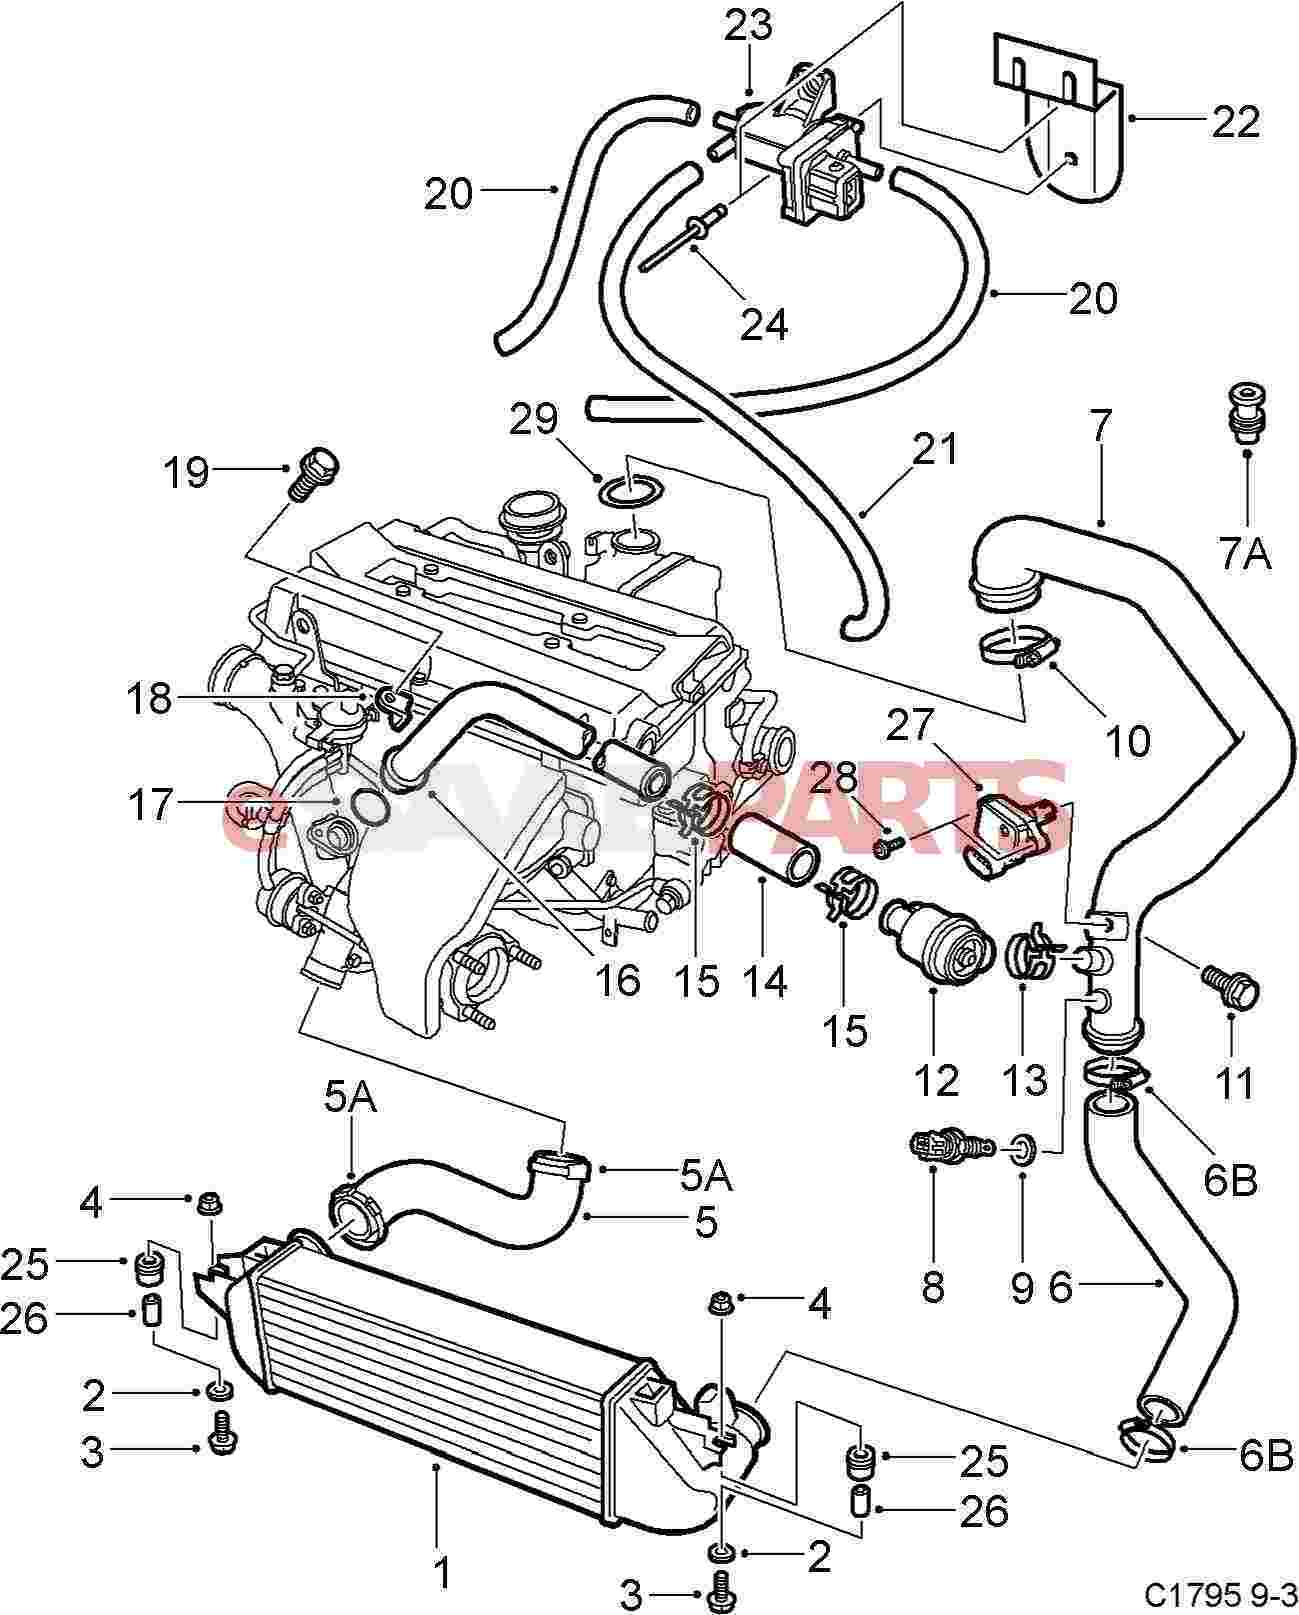 4441895 Saab Charge Air Bypass Valve Genuine Parts From. Wiring. Intercooler Engine With Turbocharger Diagram At Scoala.co